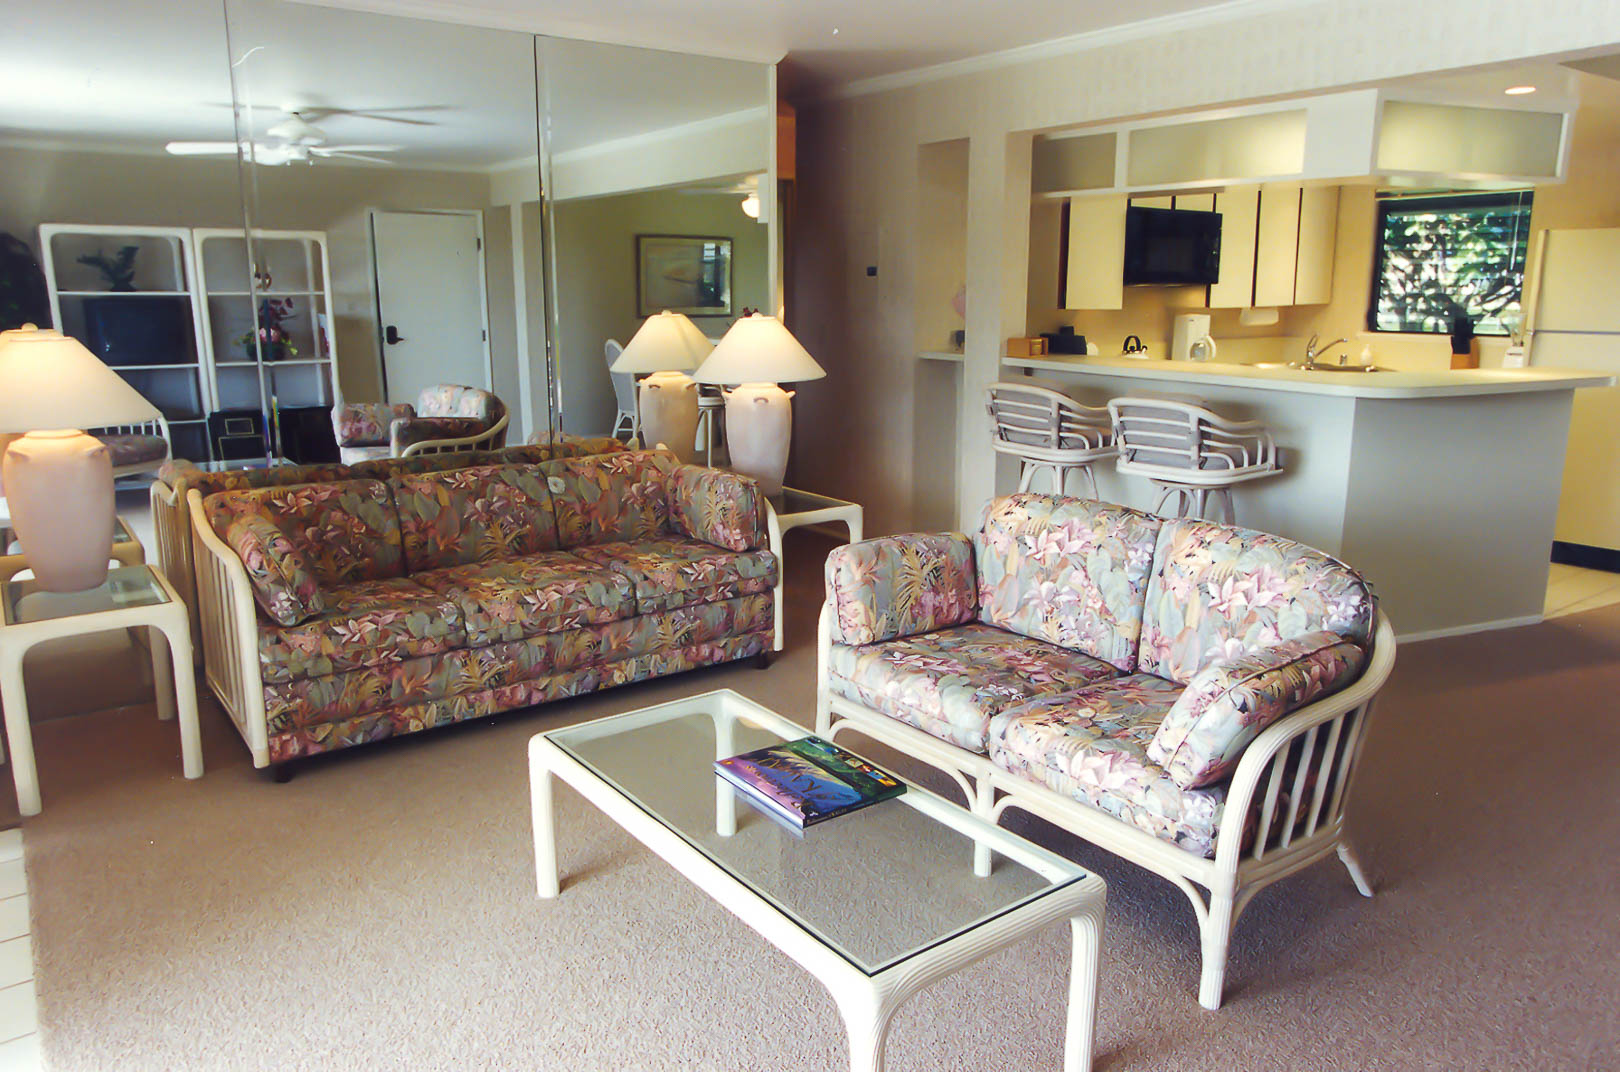 A colorful living room area at VRI's Alii Kai Resort in Hawaii